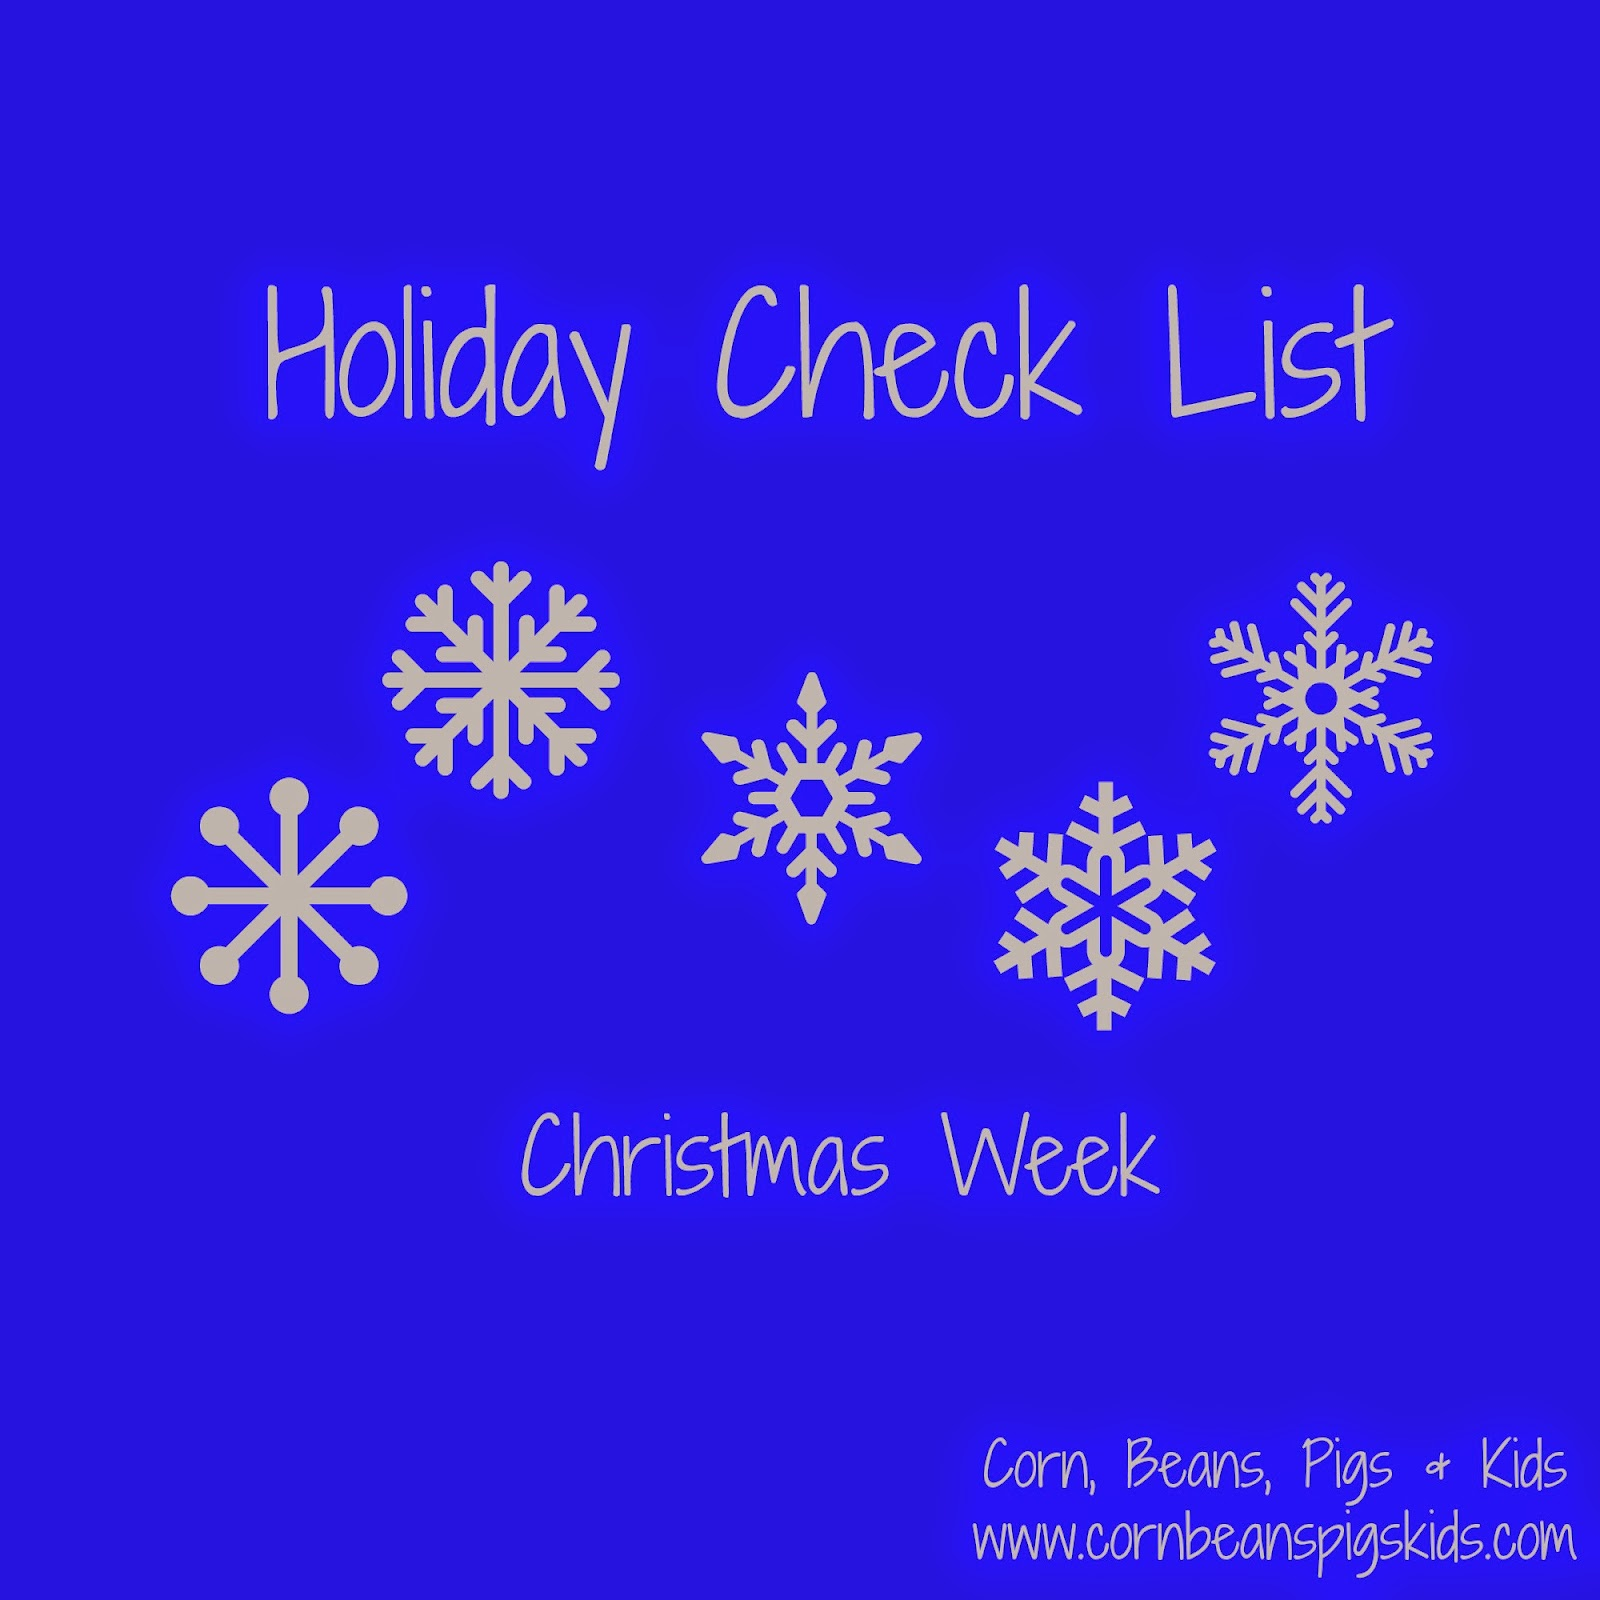 corn beans pigs and kids holiday check list christmas week - Christmas Lists 2014